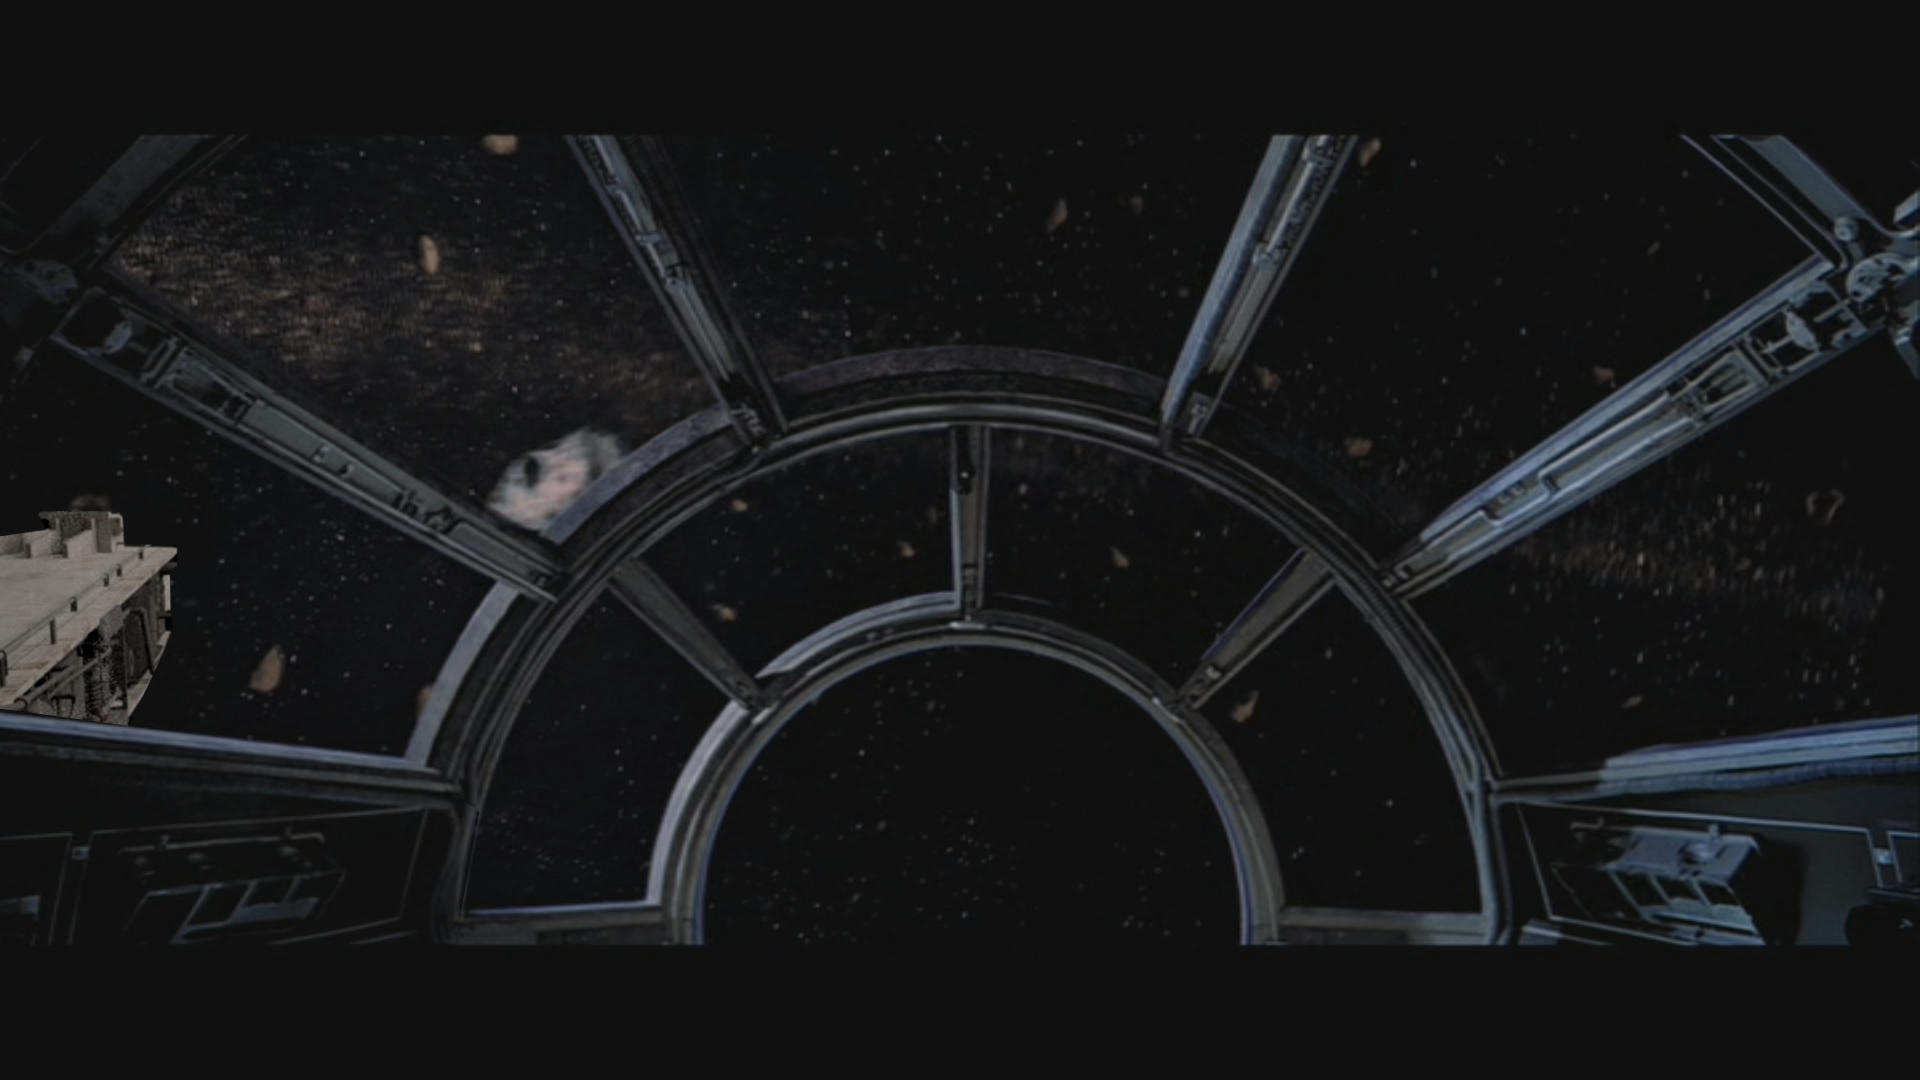 Displaying images for millenium falcon cockpit wallpaper - When Should We See The Falcons Mandibles Out The Window Original Trilogy